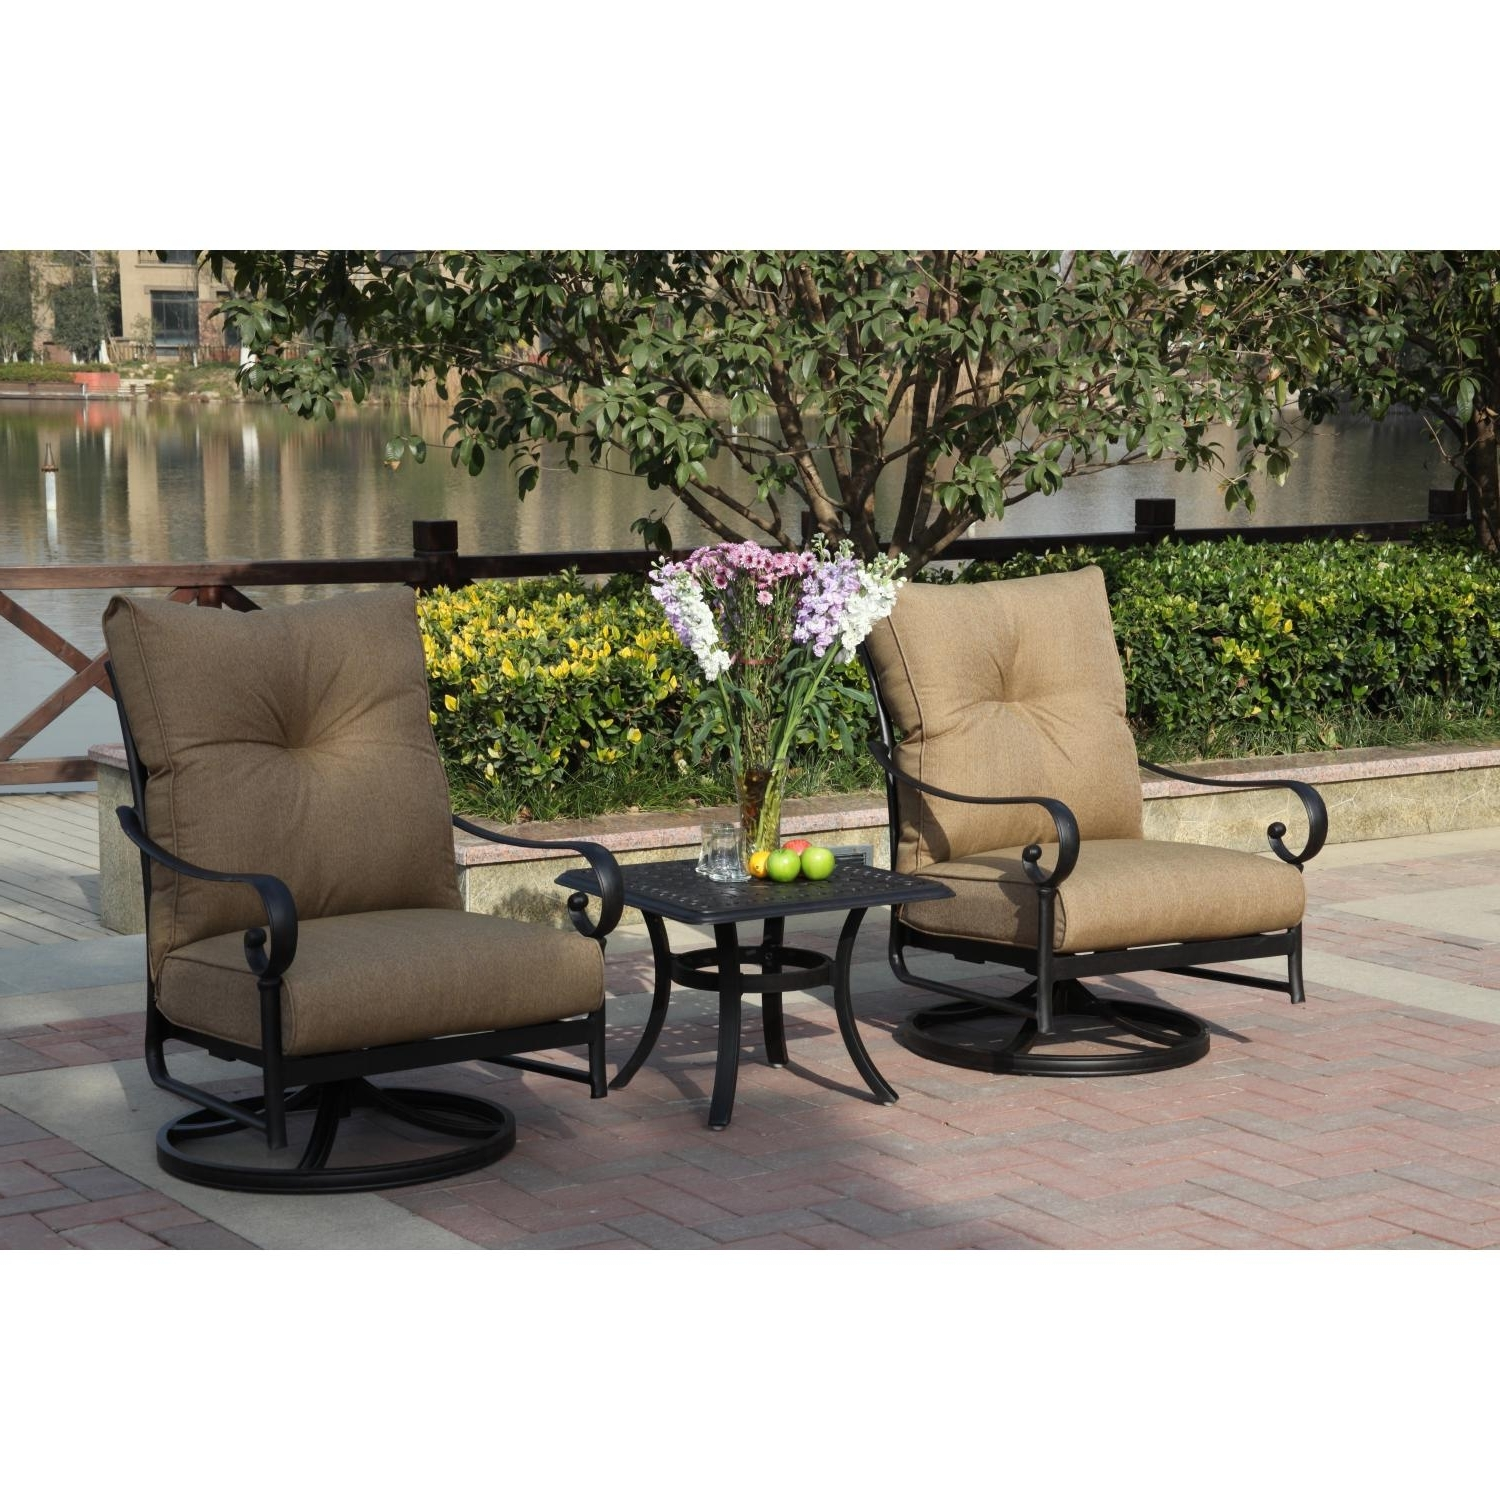 Darlee Santa Anita 3 Piece Cast Aluminum Patio Conversation Seating Set  With Swivel Rockers Pertaining To Recent Patio Conversation Sets With Rockers (View 3 of 15)